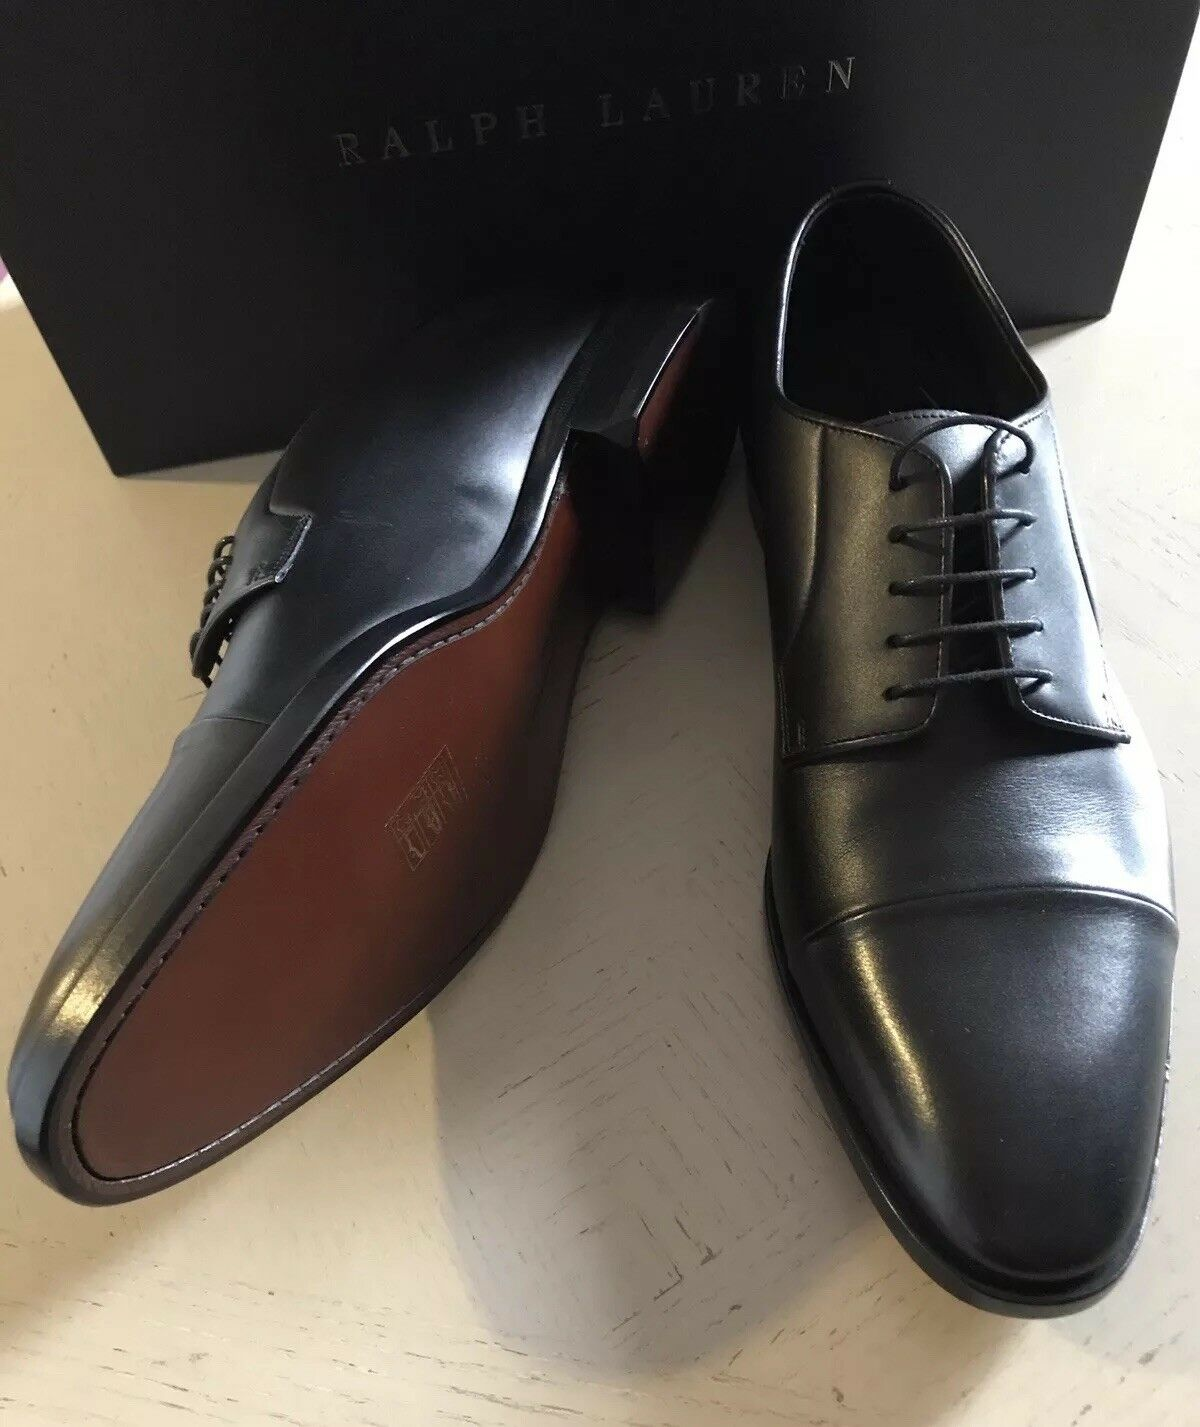 New $695 Men's Ralph Lauren Purple Label Leather Oxfords Shoes Black 9.5 US Ita